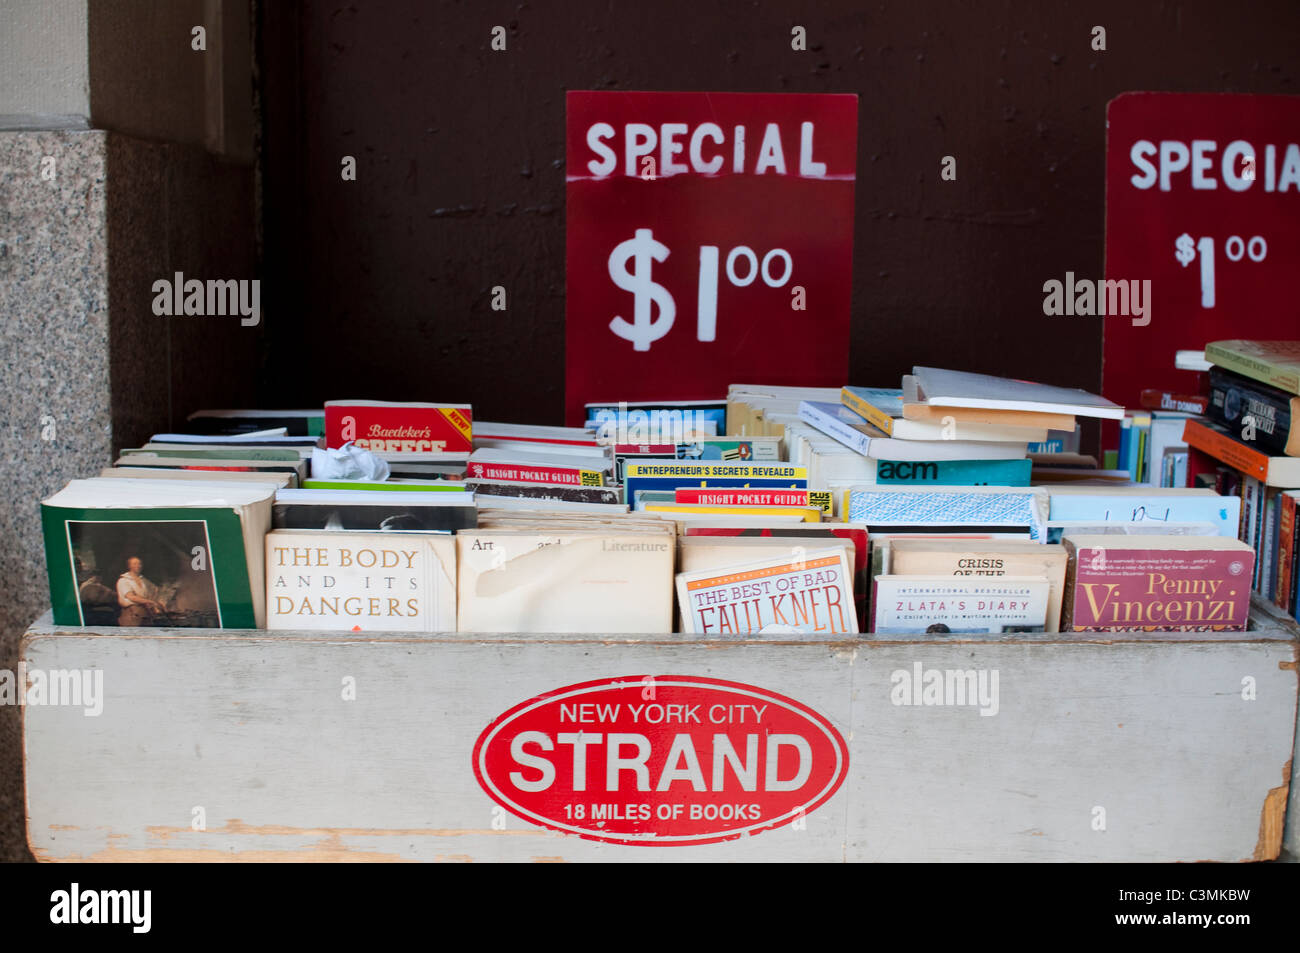 Bargain books for sale at the Strand bookshop in New York City. - Stock Image